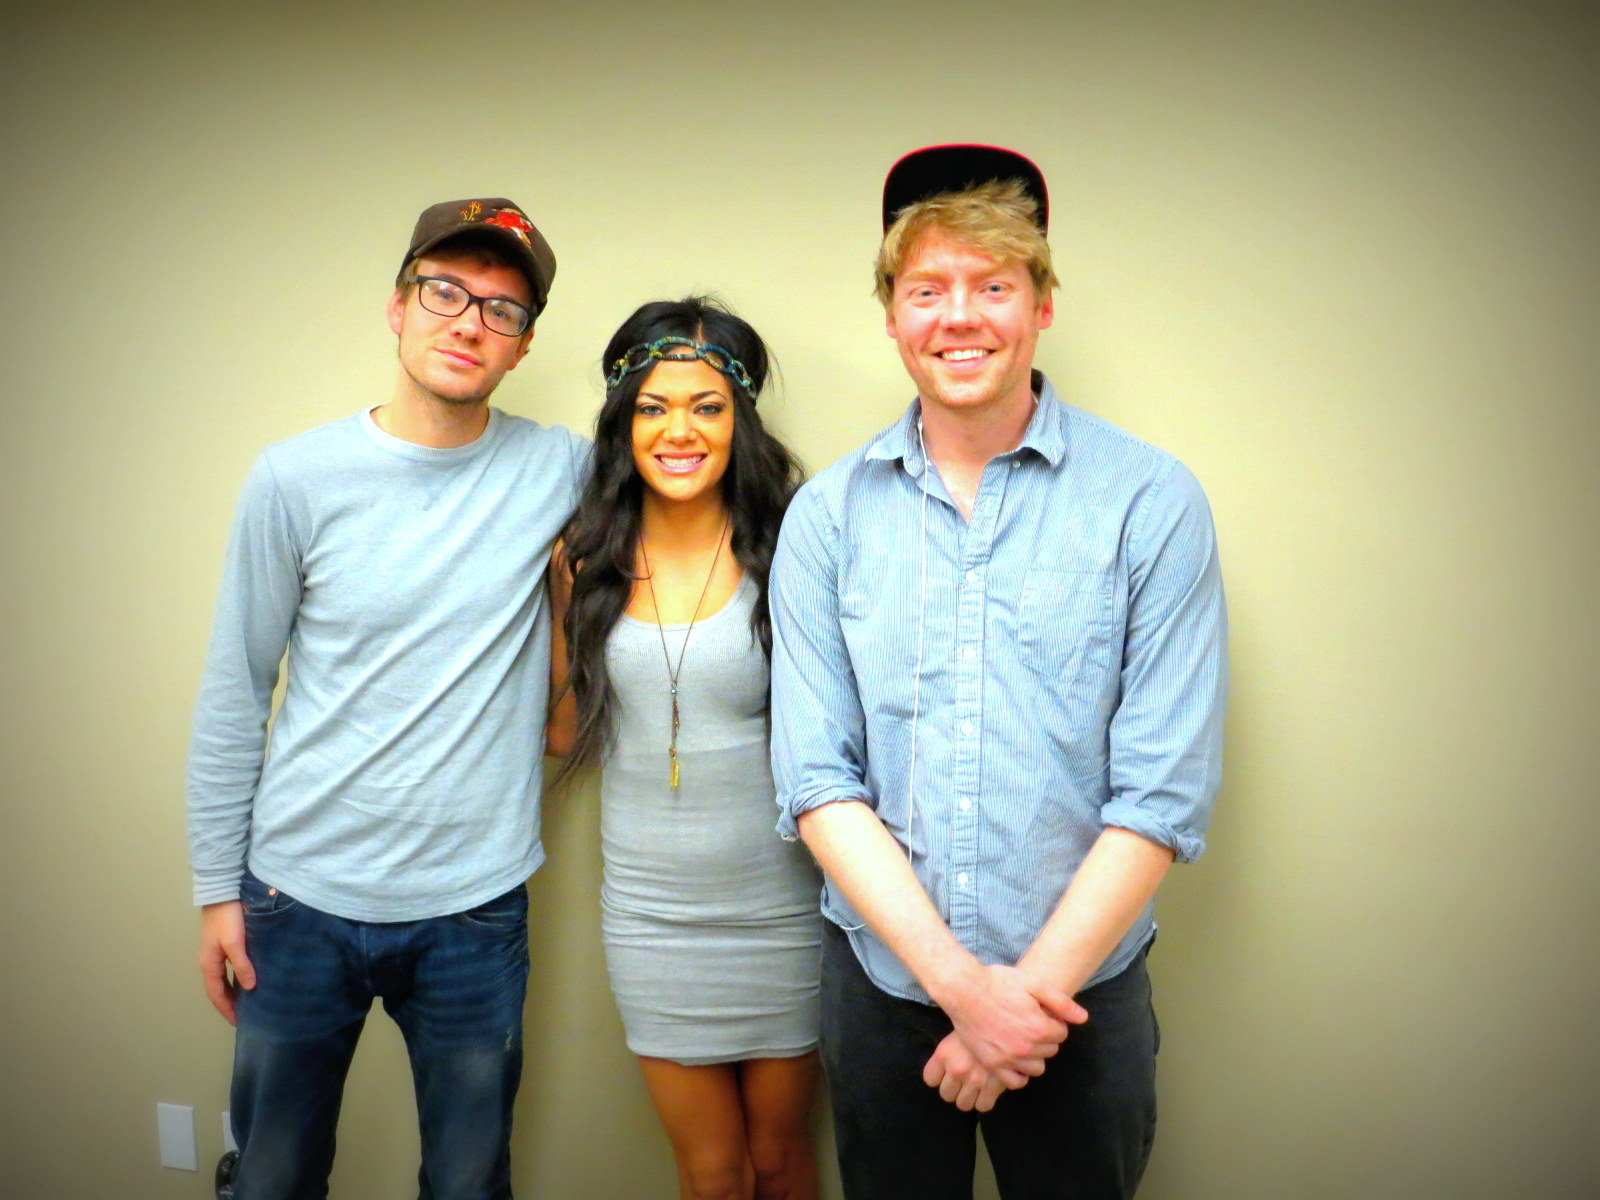 Neither Did Kristen Though, episode #13 of the reality ... Zach Nichols And Jonna Mannion